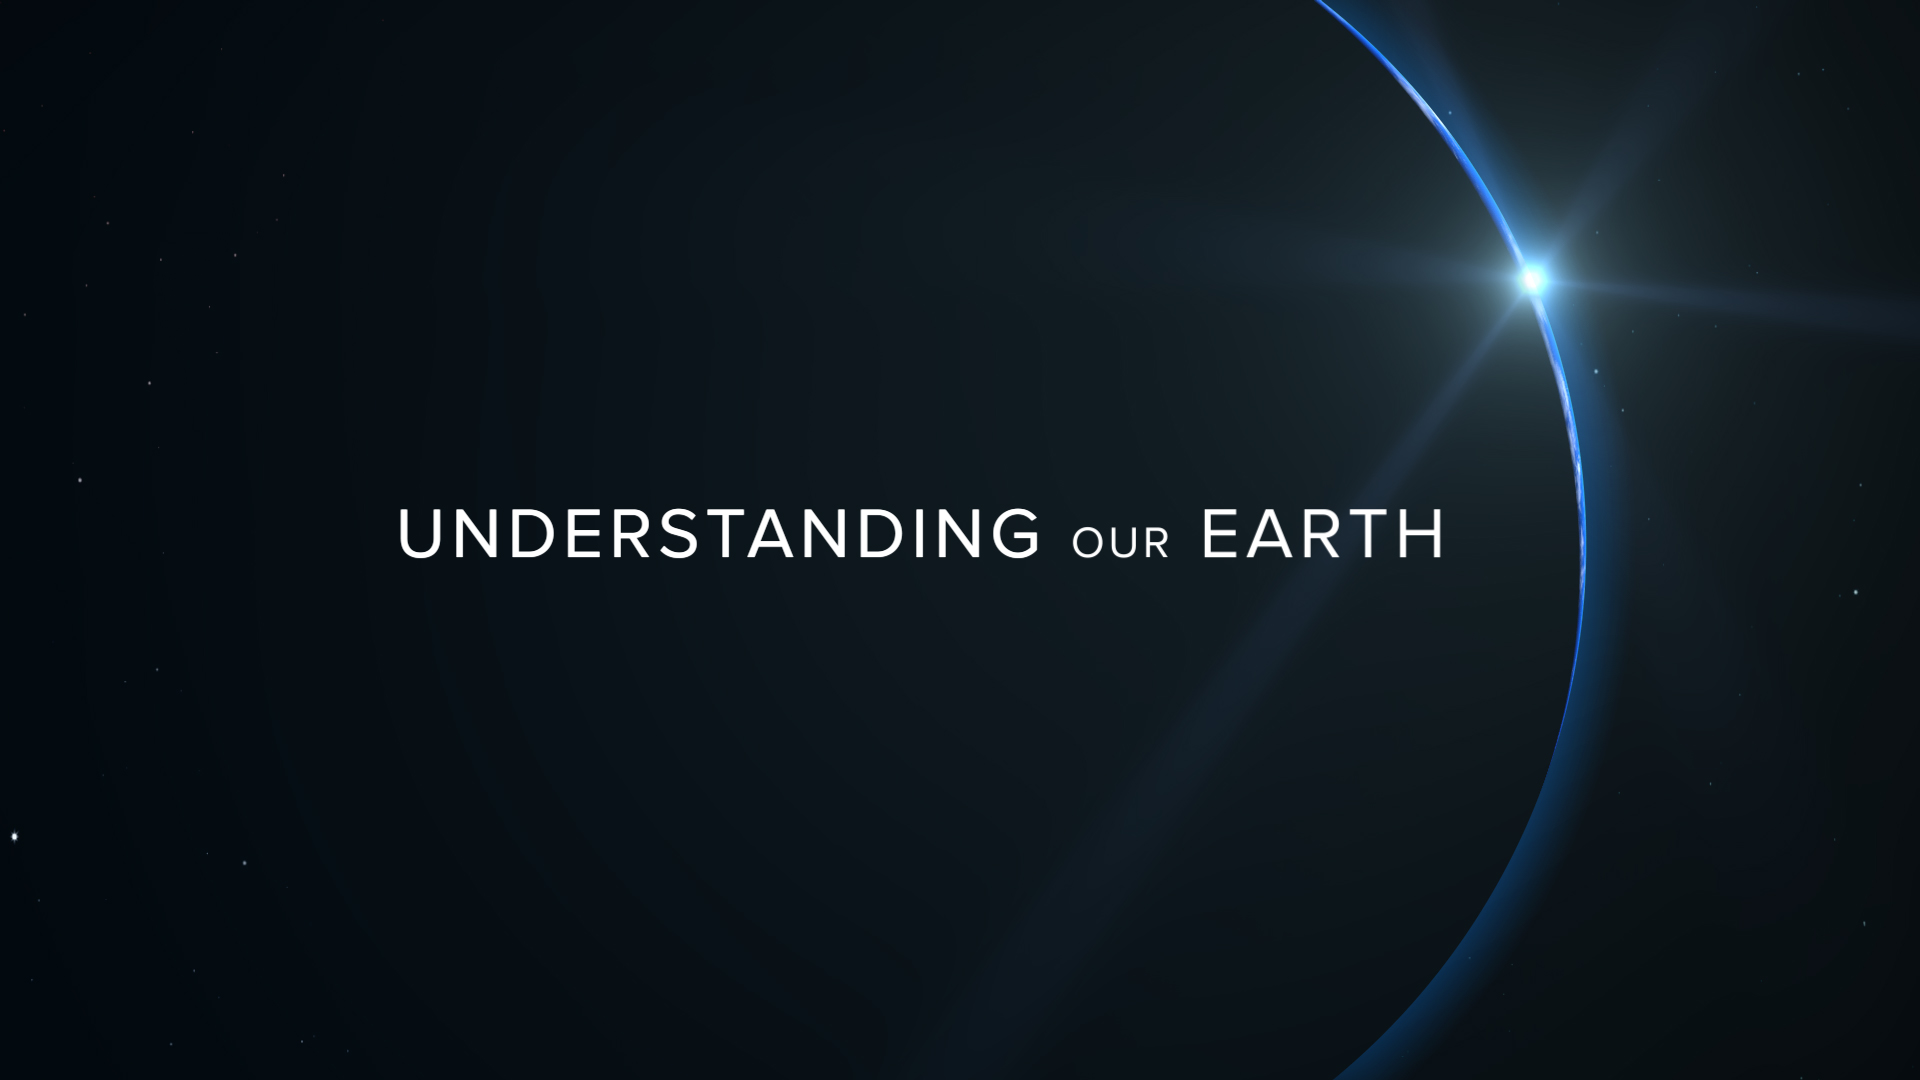 Understanding our earth